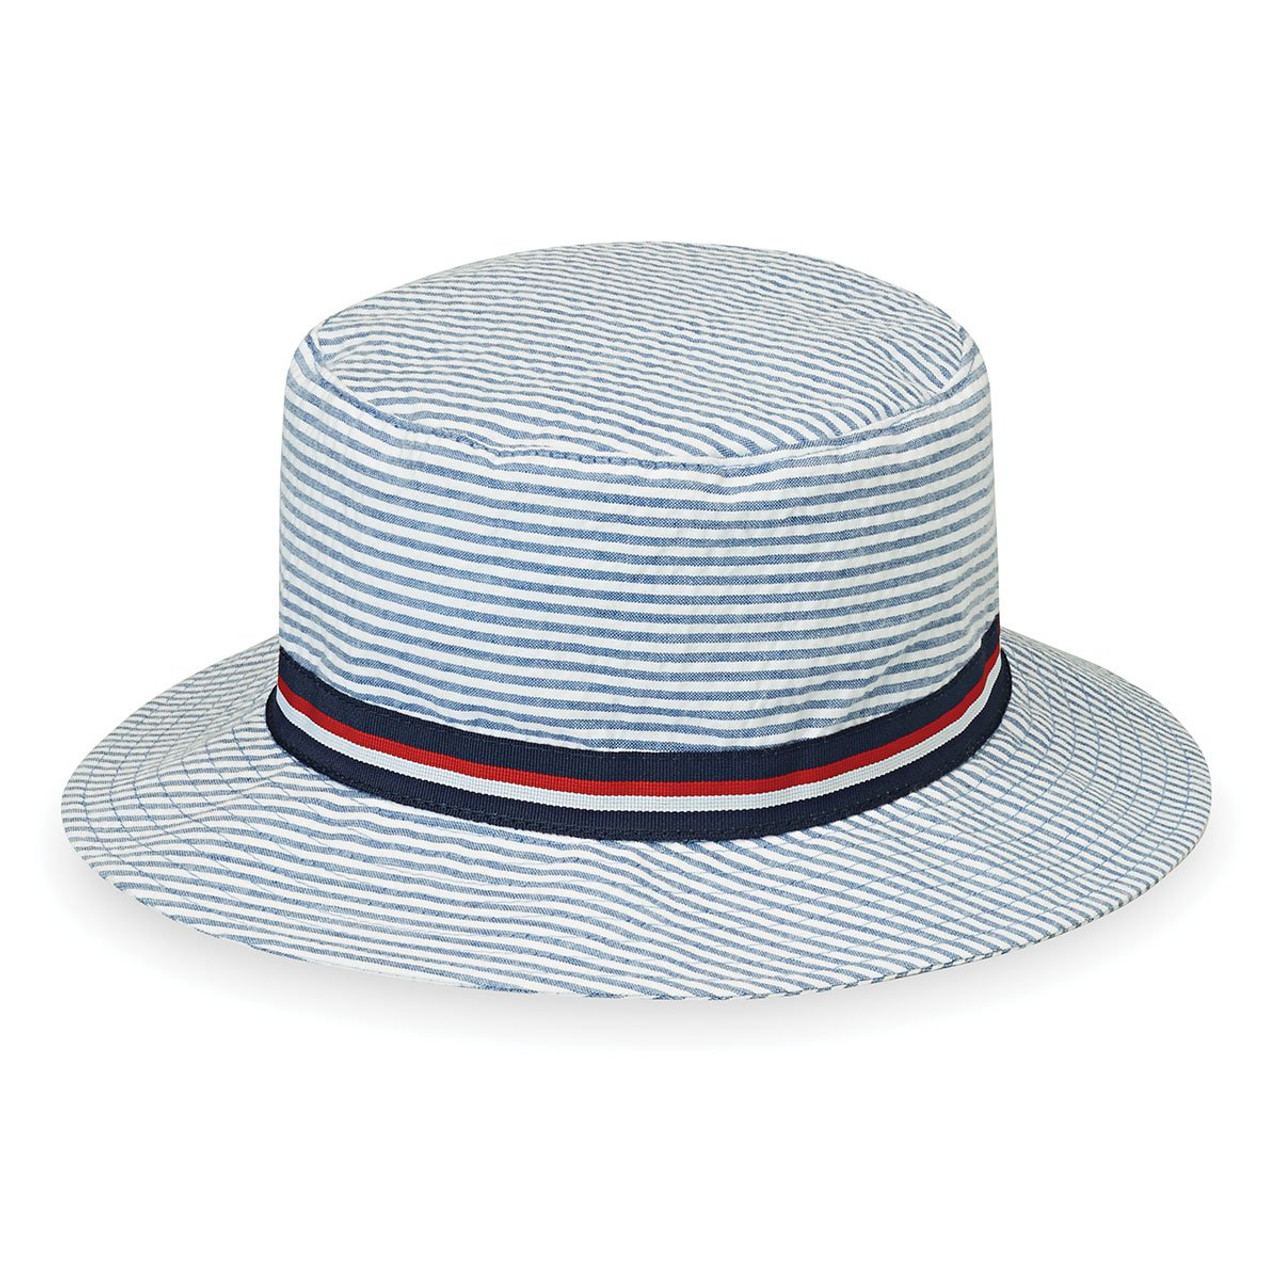 cd8a7c06c73 wallaroo boys blue stripes sawyer hat upf50